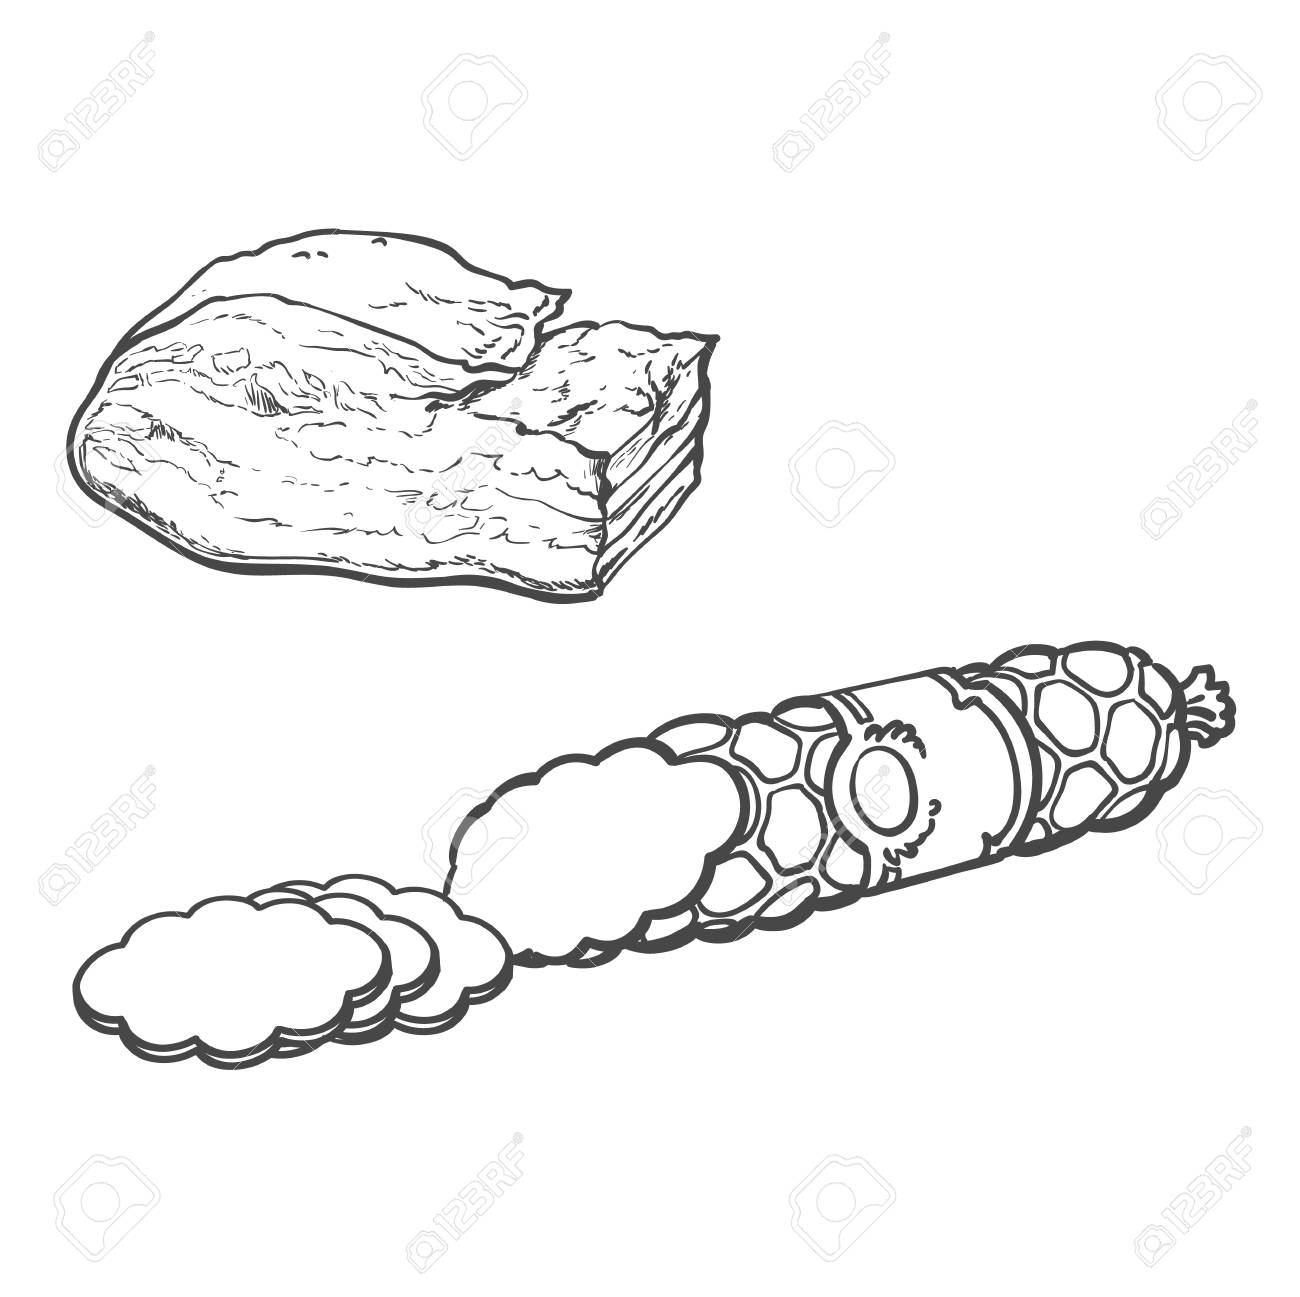 1300x1297 Vector Sketch Salami Sausage With Slices And Pork Lard. Cartoon